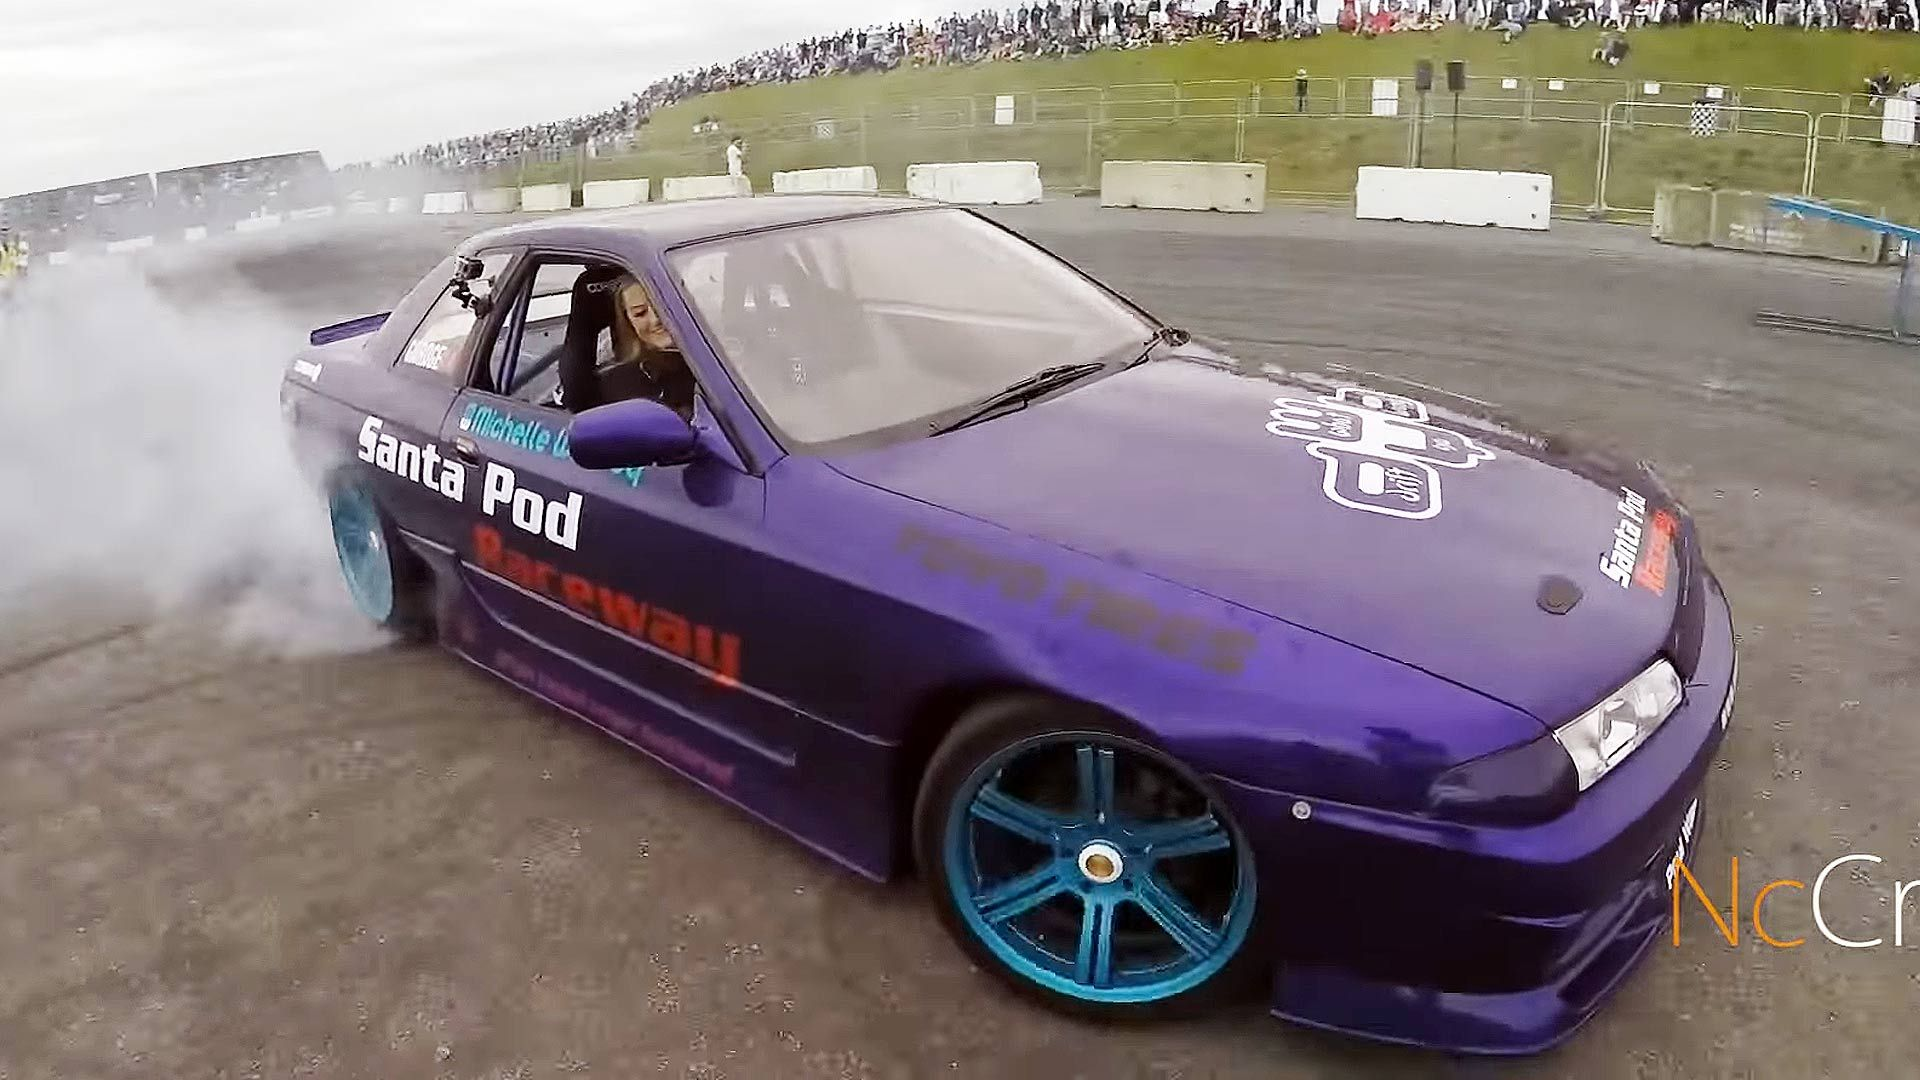 These Girls Love Drifting Drifting is a sitting technique where the driver intentionally oversteers, causing loss of traction in the rear wheels or all tires, while maintaining control from entry to exit of a corner. A car is drifting when the rear slip angle is greater than the front slip angle, to such an extent that often the front wheels are pointing in the opposite direction to the turn (e.g. car is turning left, wheels are pointed right or